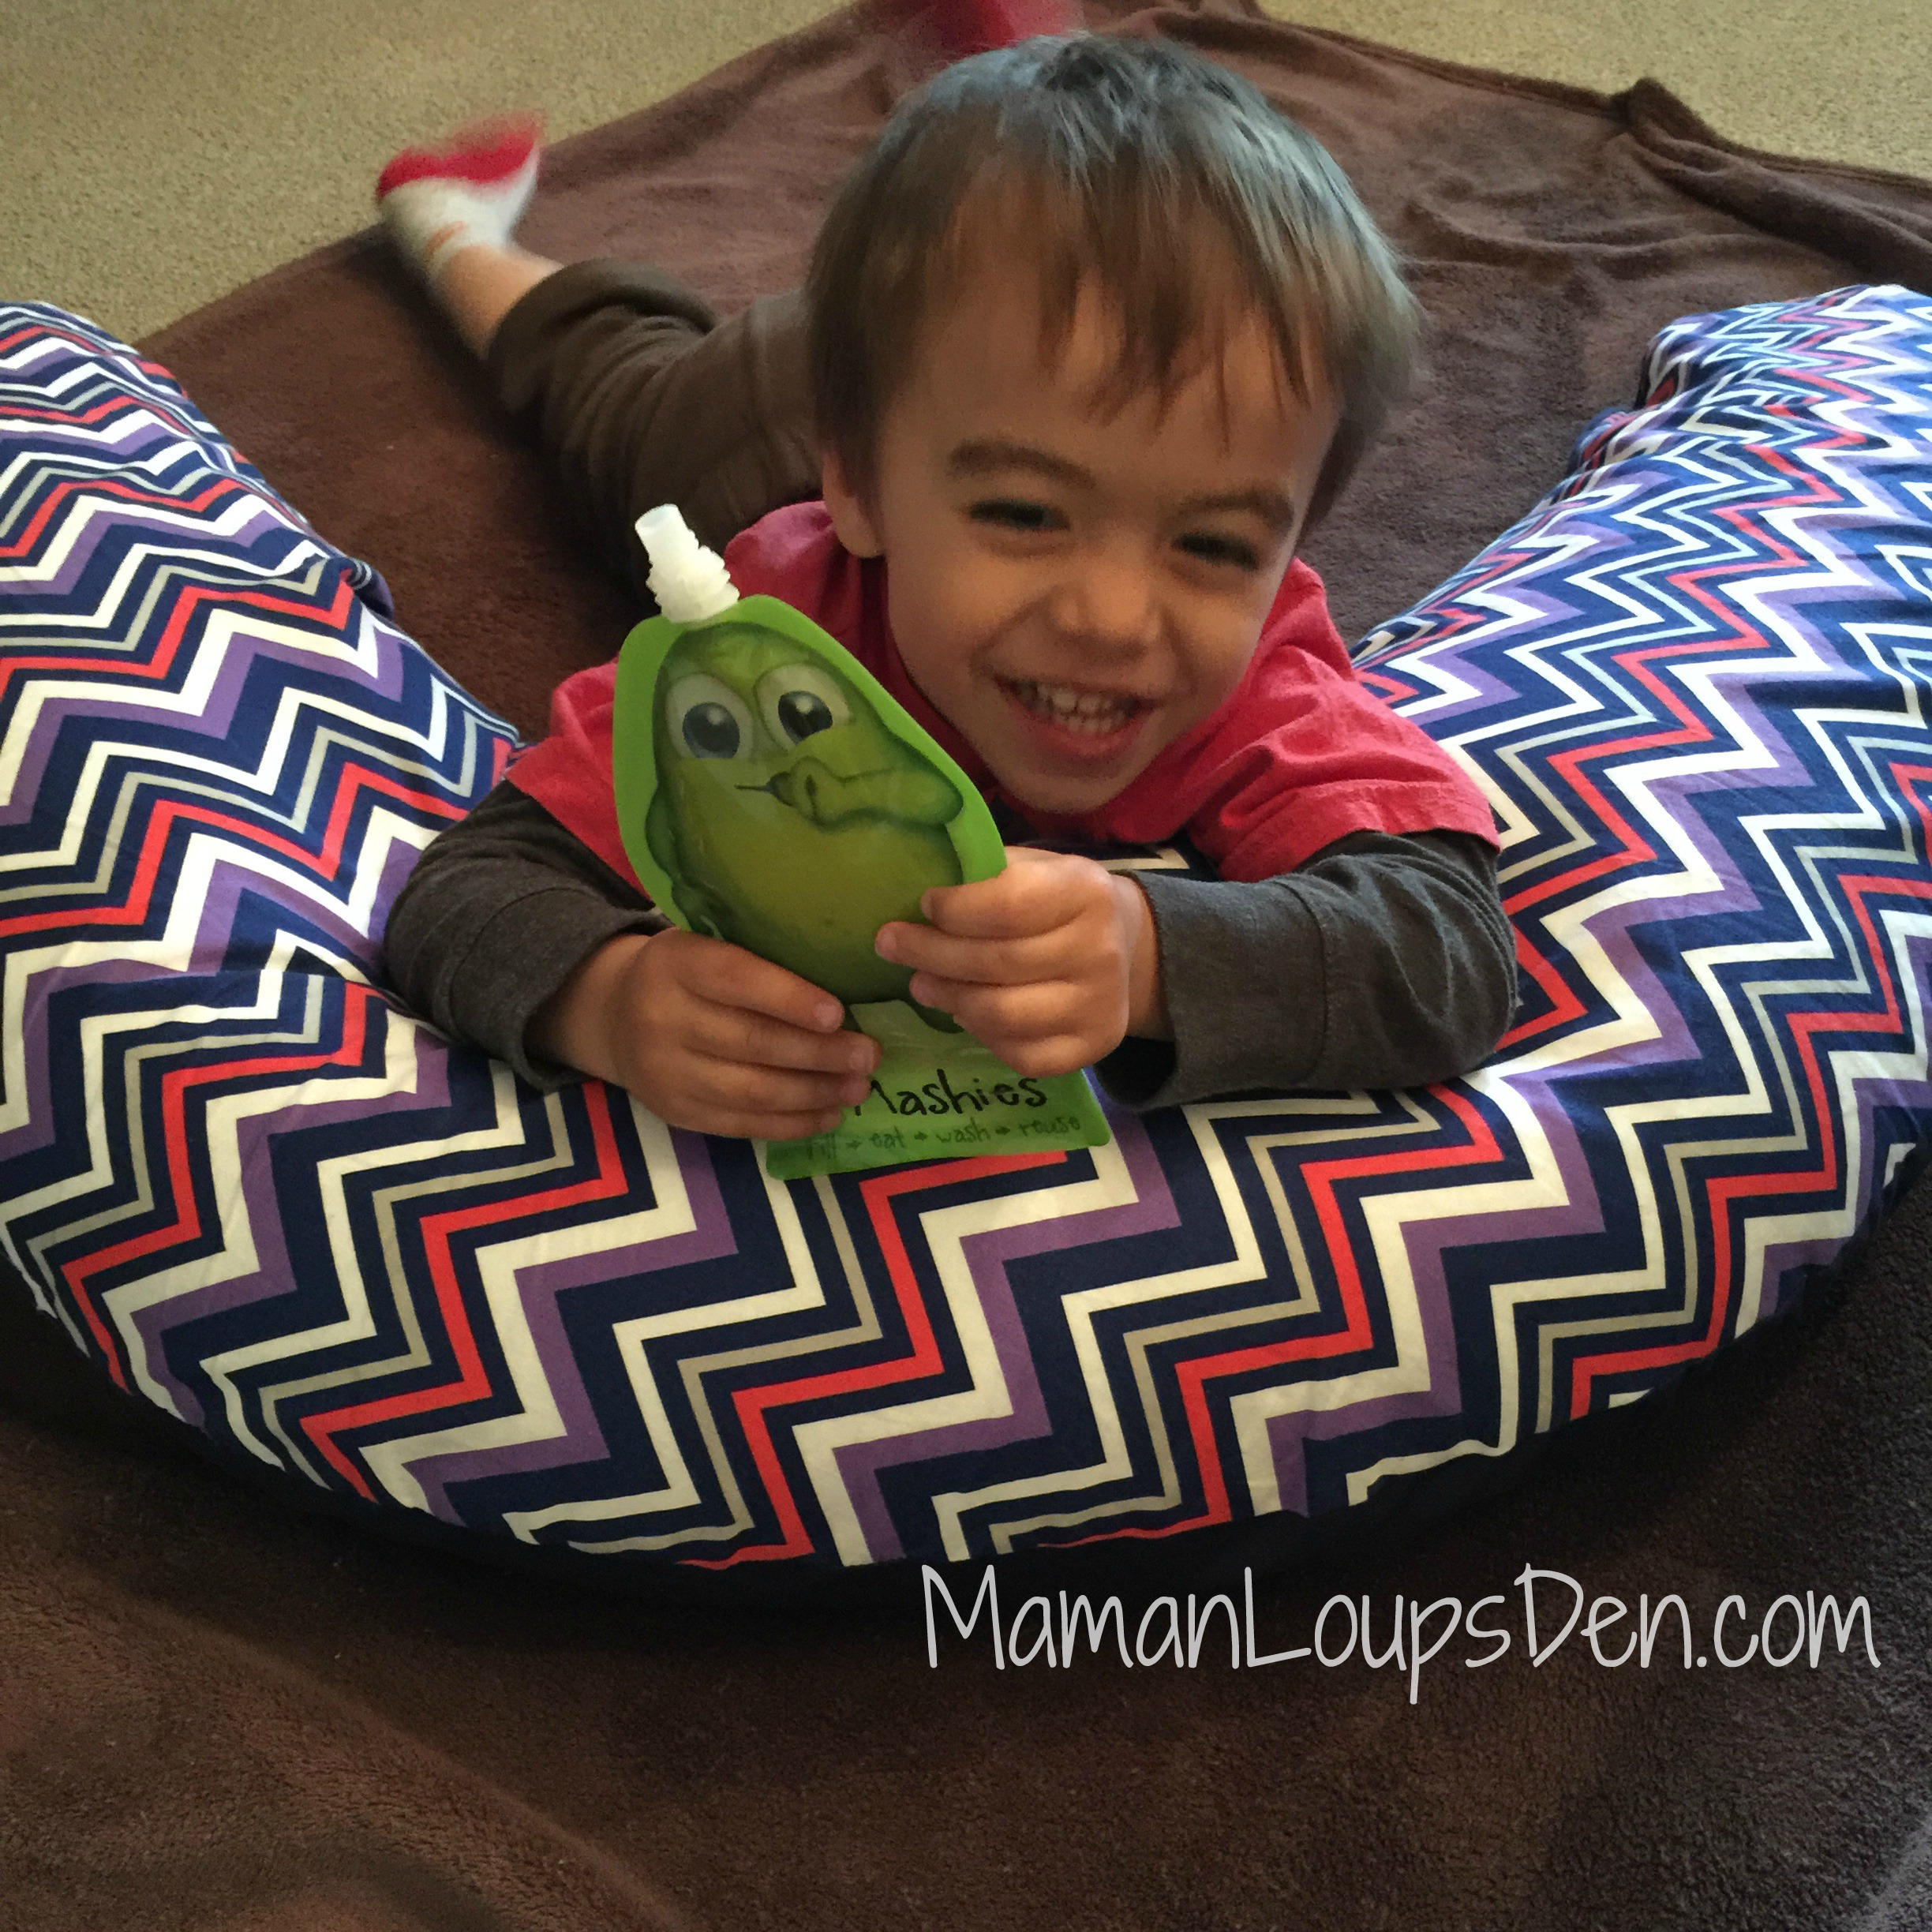 Coussins Etc. maternity pillow for play time